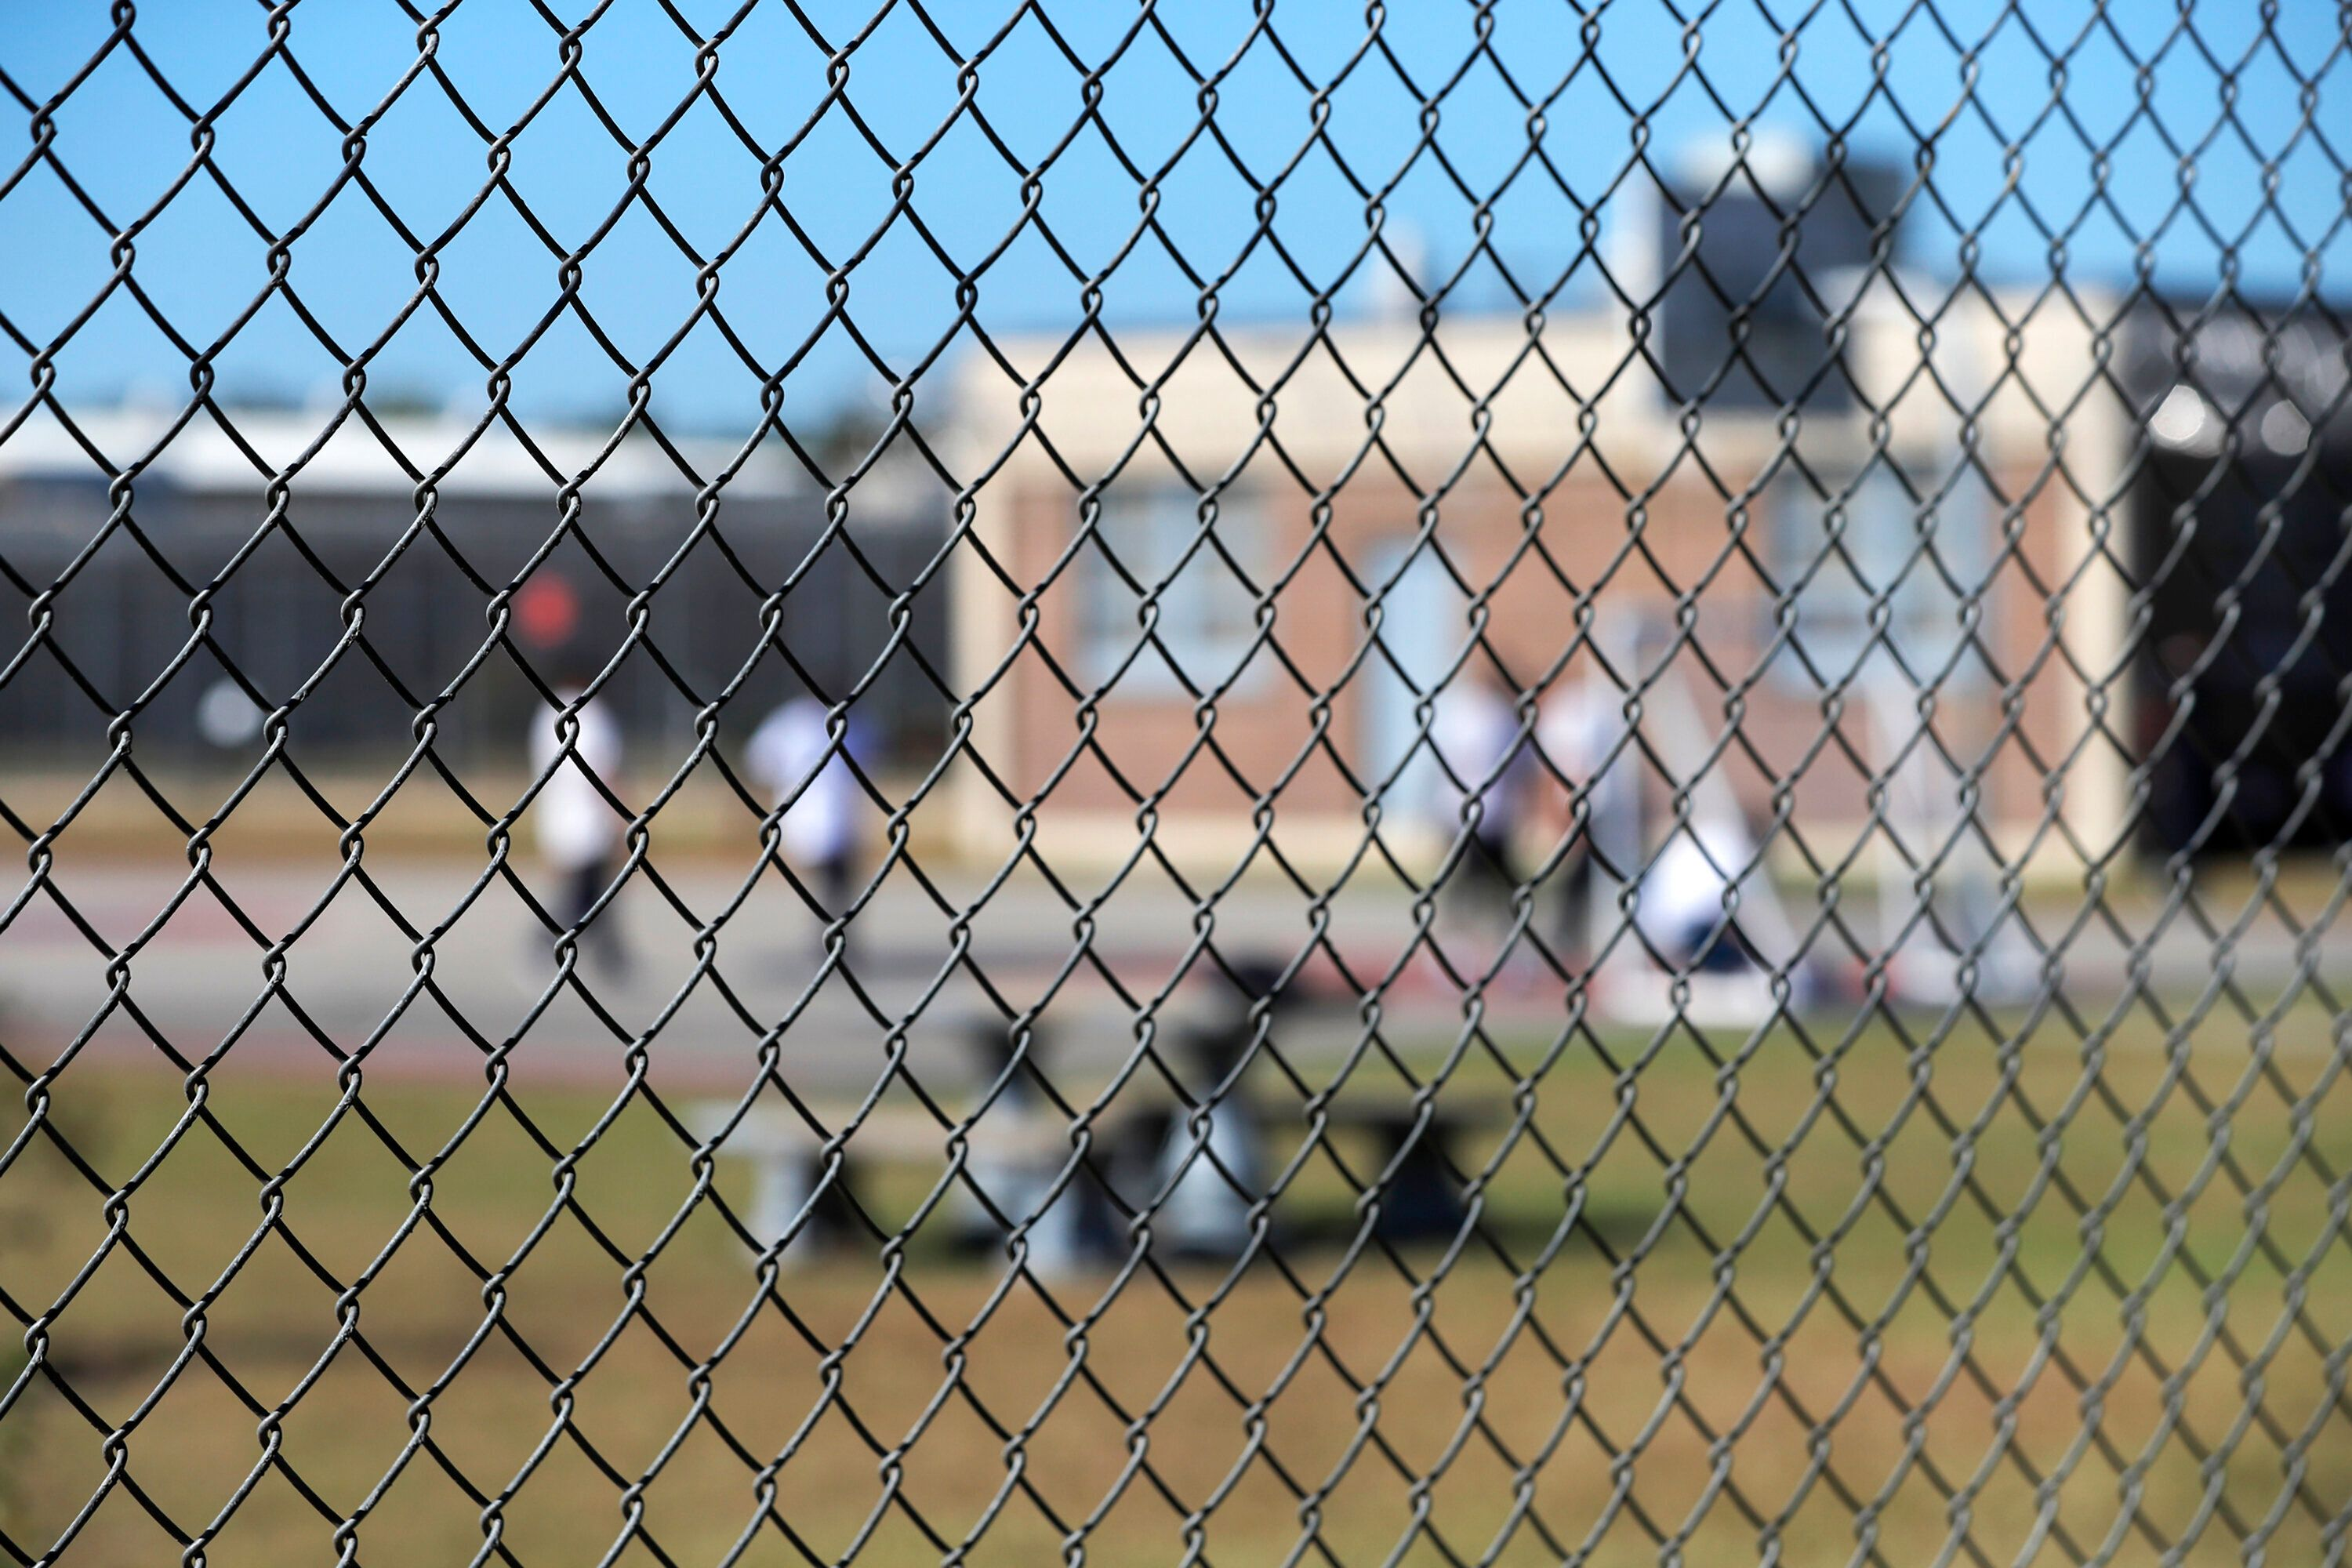 In this Sept. 26, 2019, file photo, detainees sit in a yard during a media tour inside the Winn Correctional Center in Winnfi